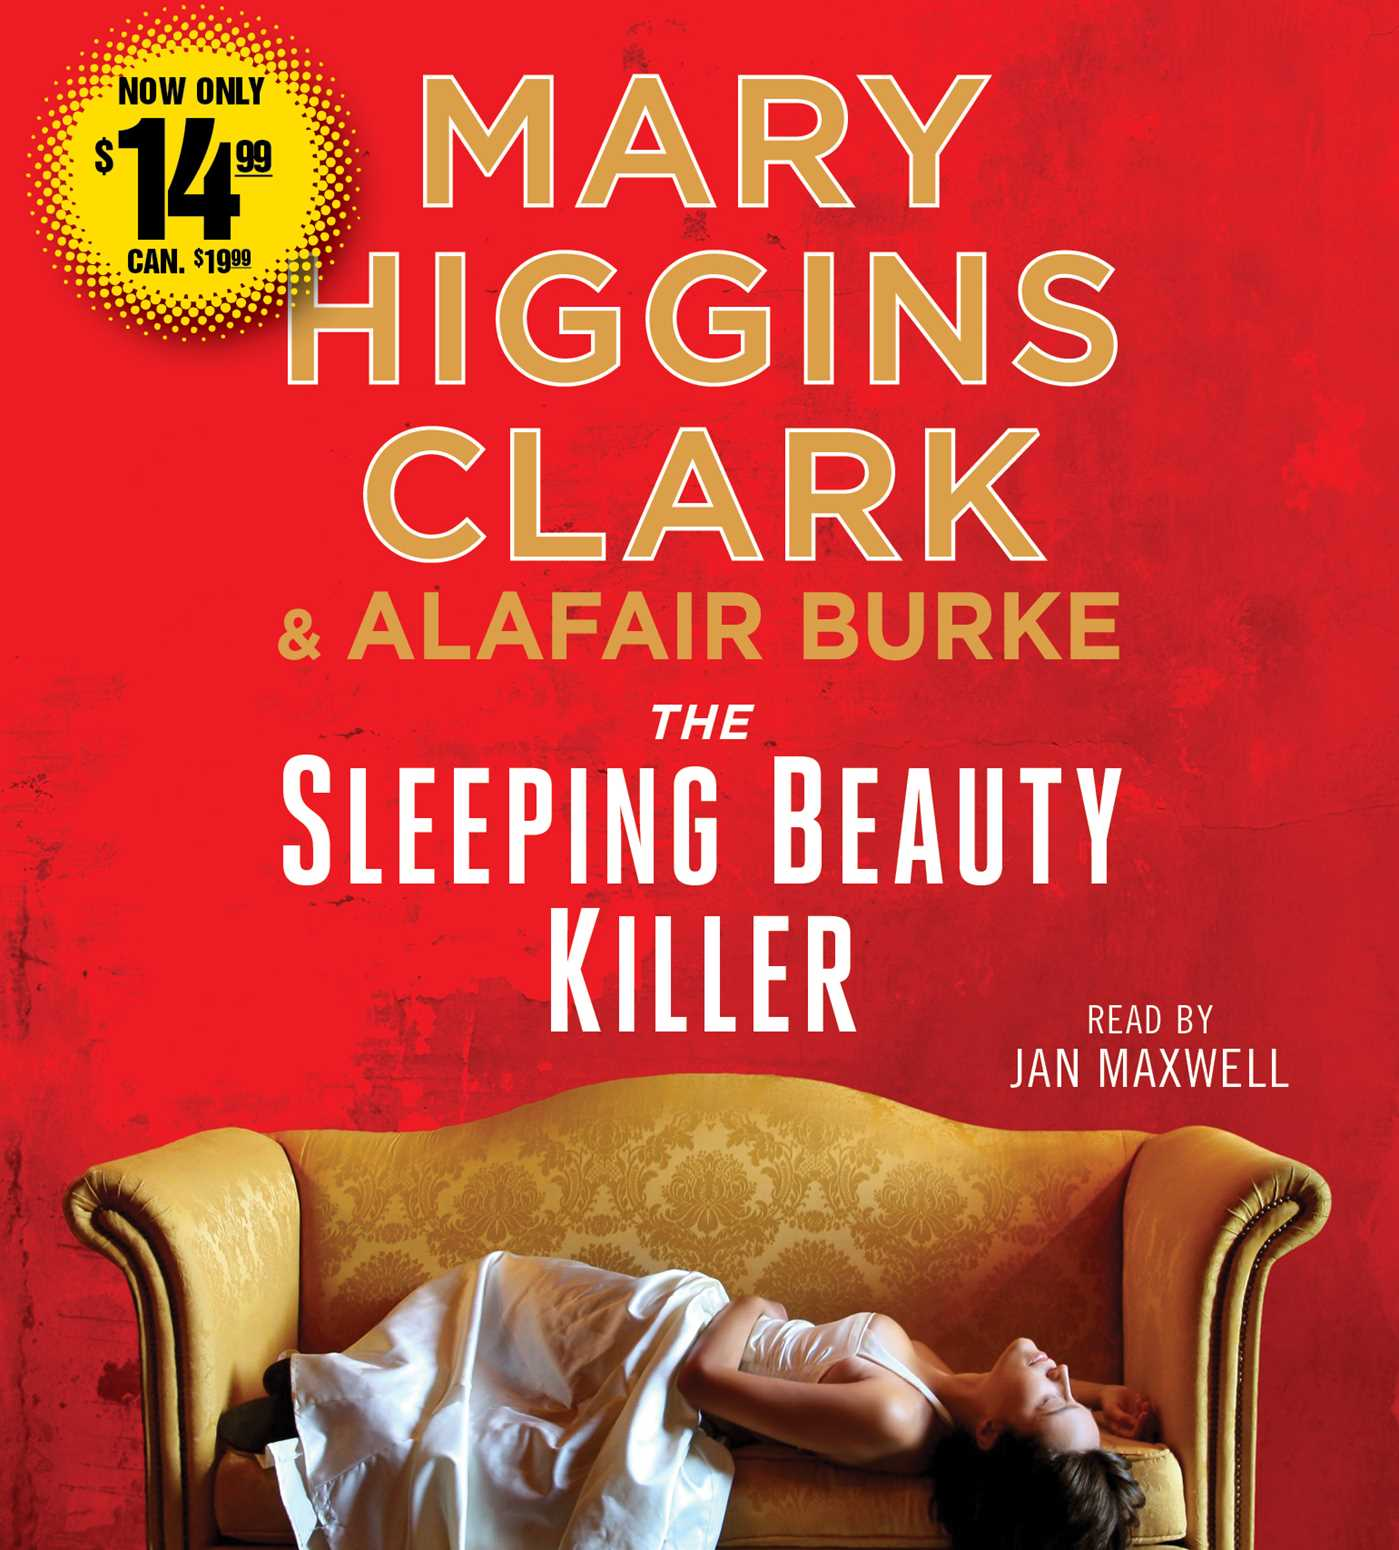 The sleeping beauty killer 9781508239314 hr